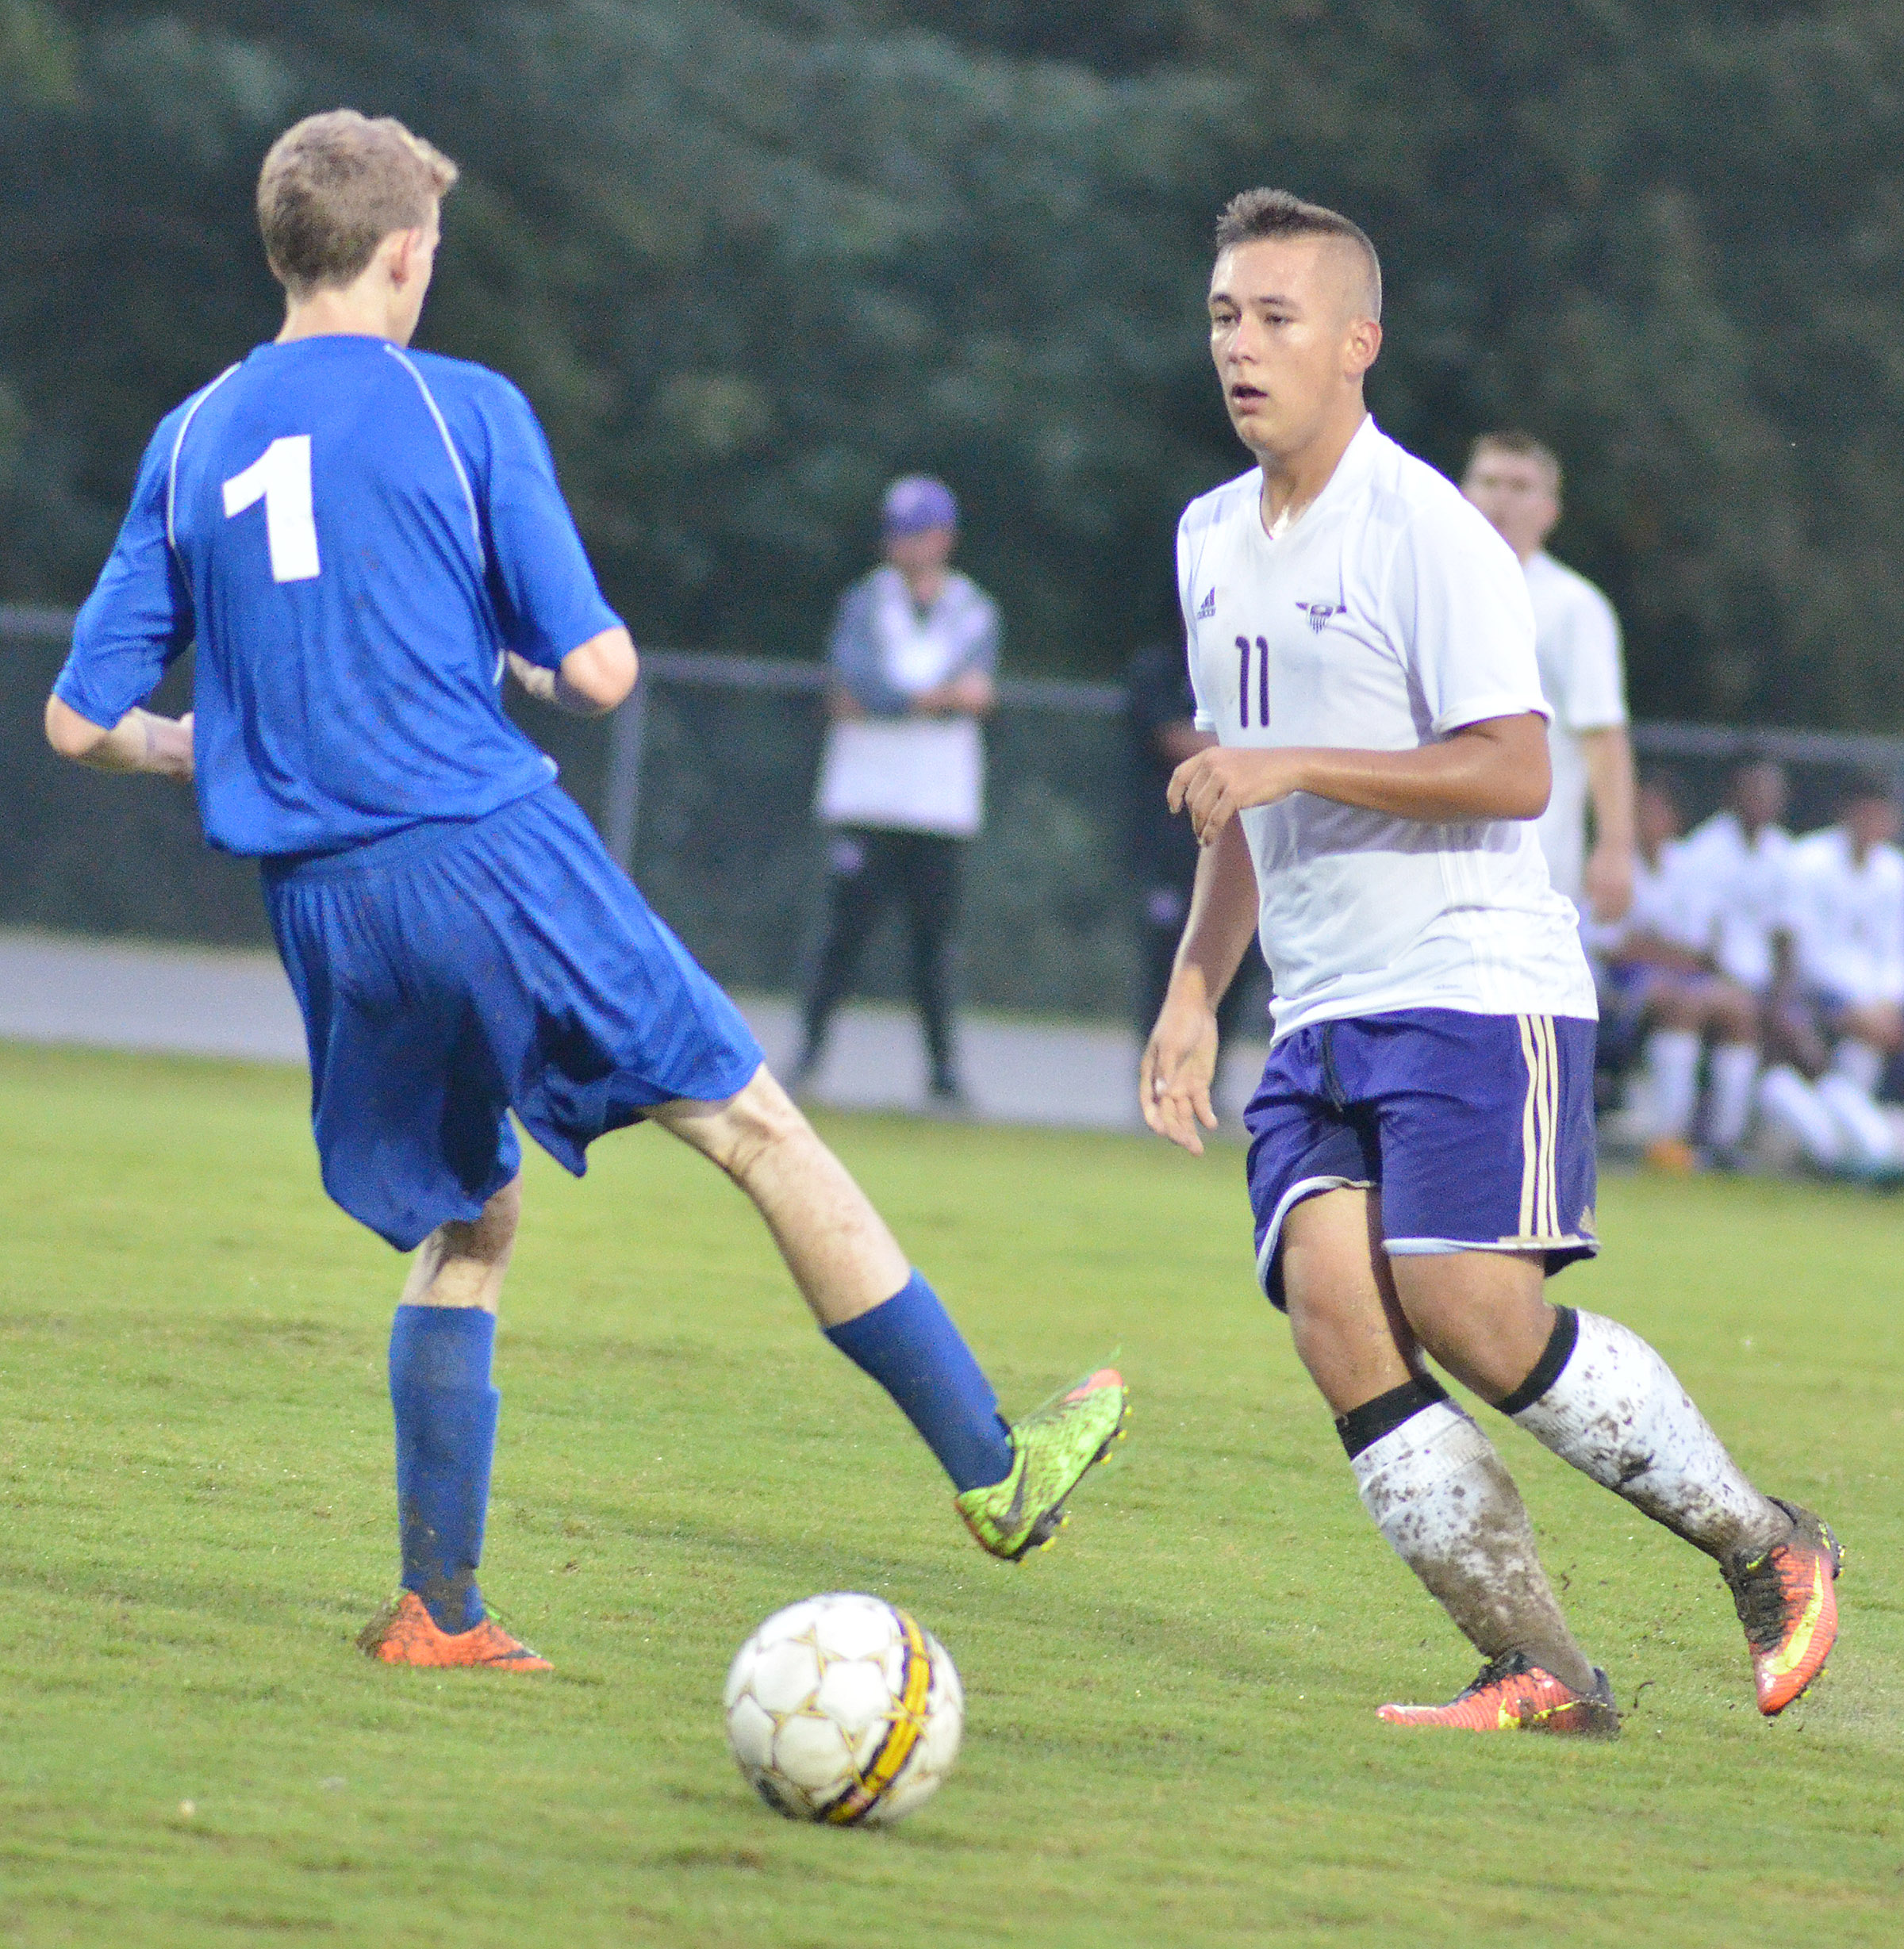 CHS senior Cody Davis plays defense.